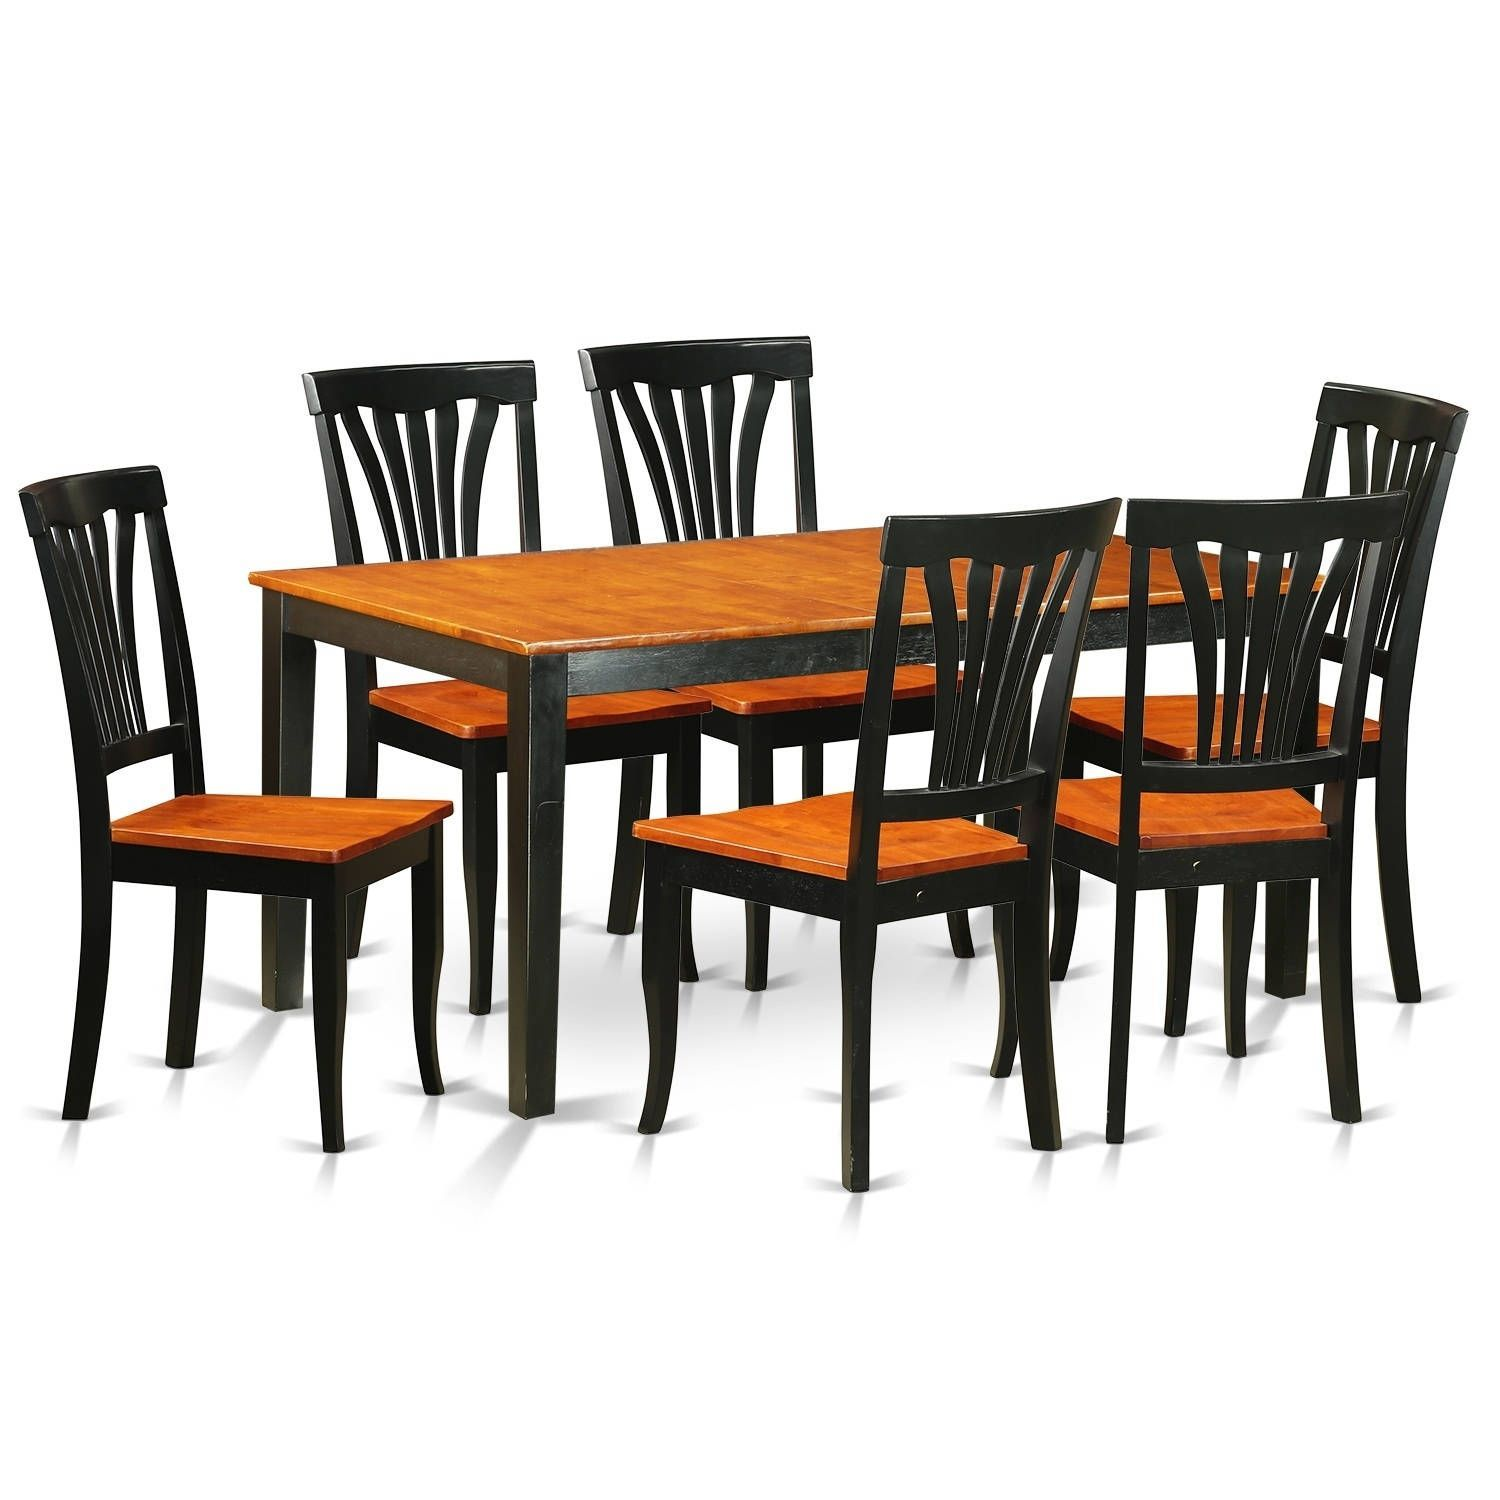 niav7 bch 7 pc kitchen table set dining table and 6 chairs faux